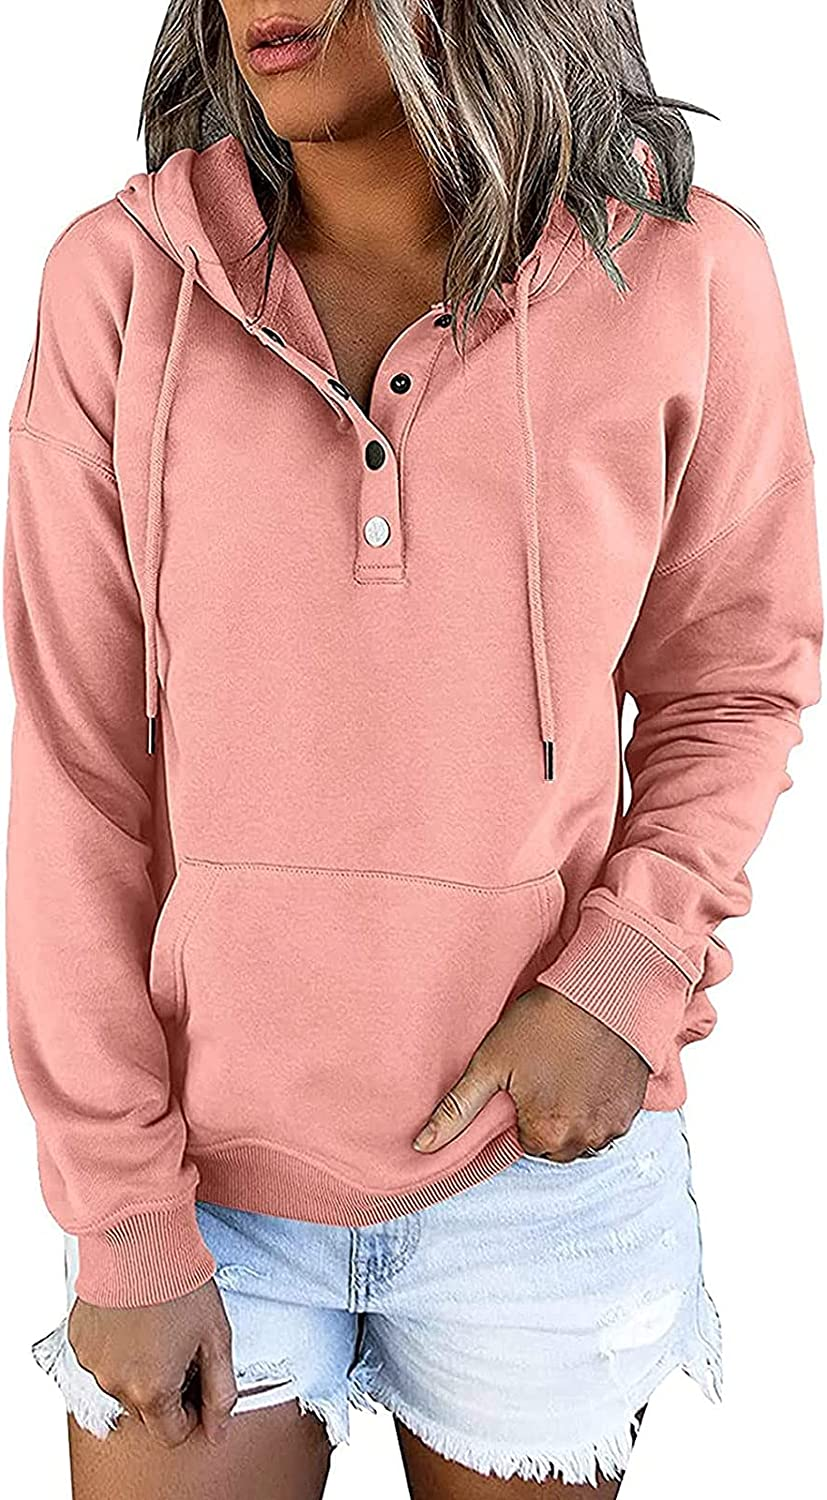 Womens Hoodies Pullover Graphic Button Down Drawstring Turtleneck Sweatshirts Casual Lightweight Comfy Long Sleeve Top